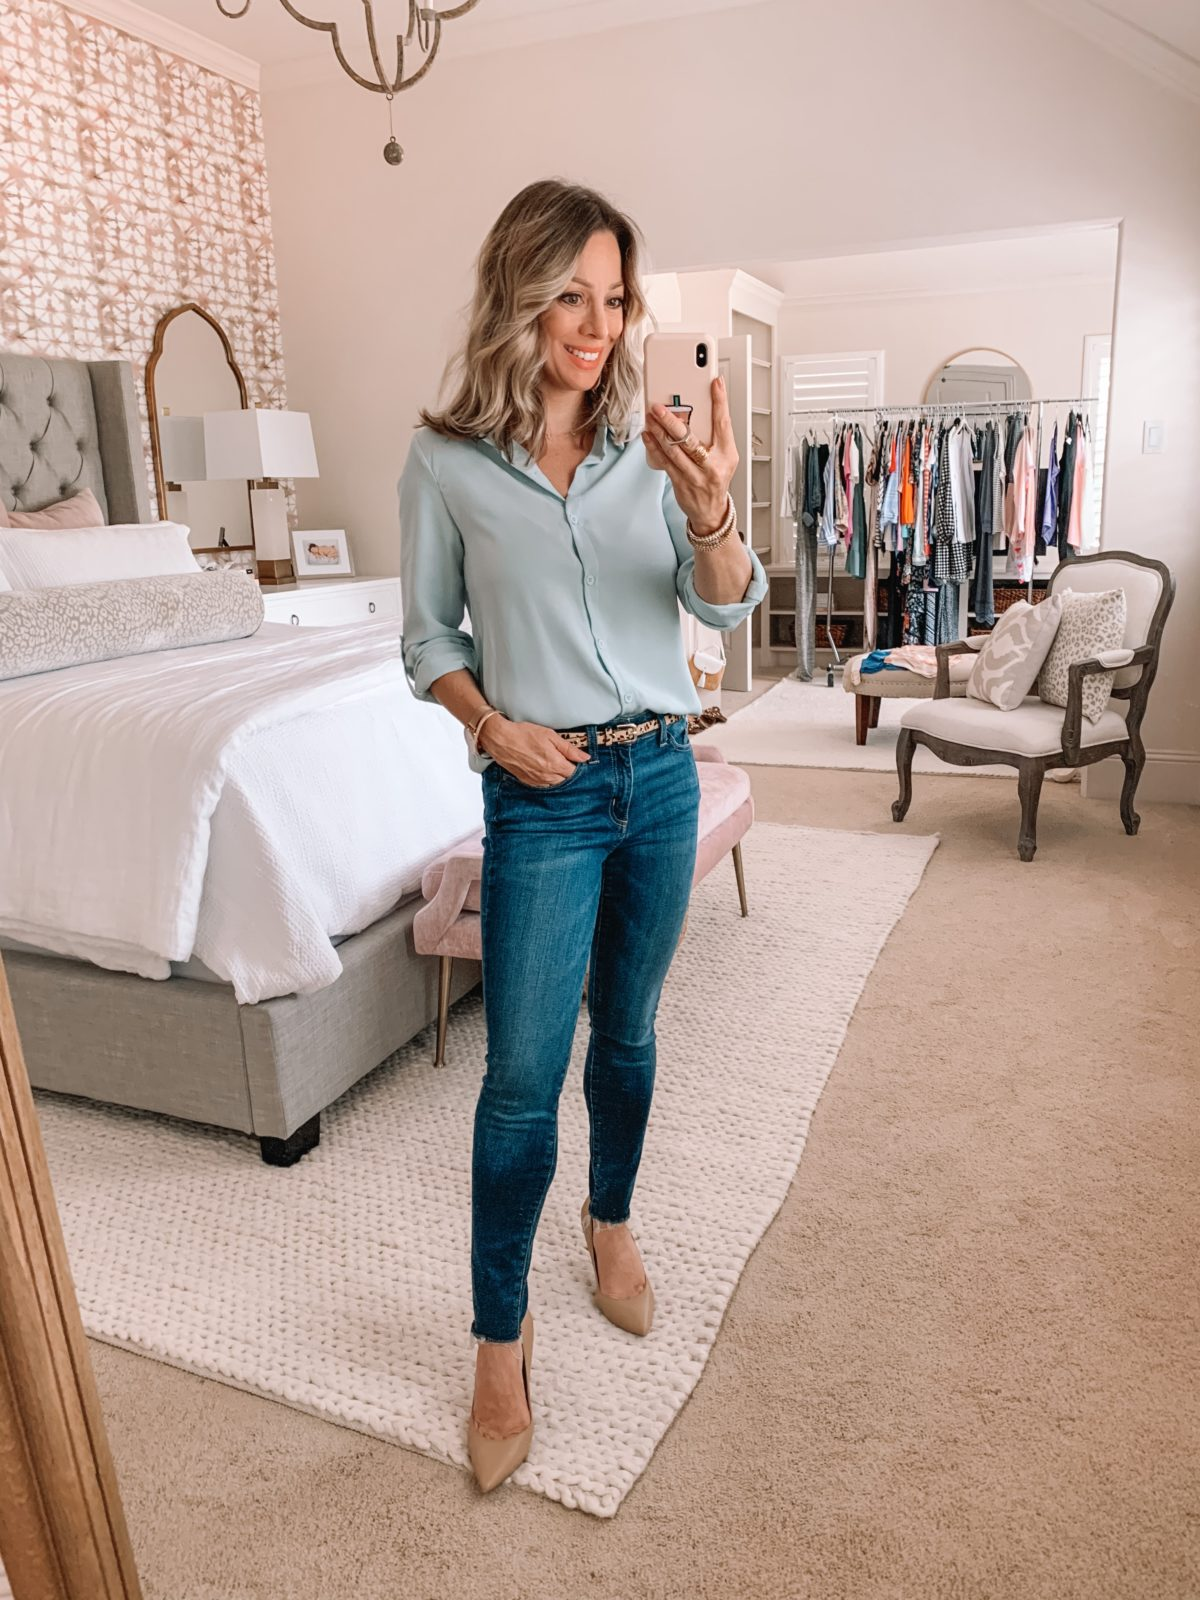 Amazon Fashion Finds, Blue Button Down Top, Skinny Jeans, Heels